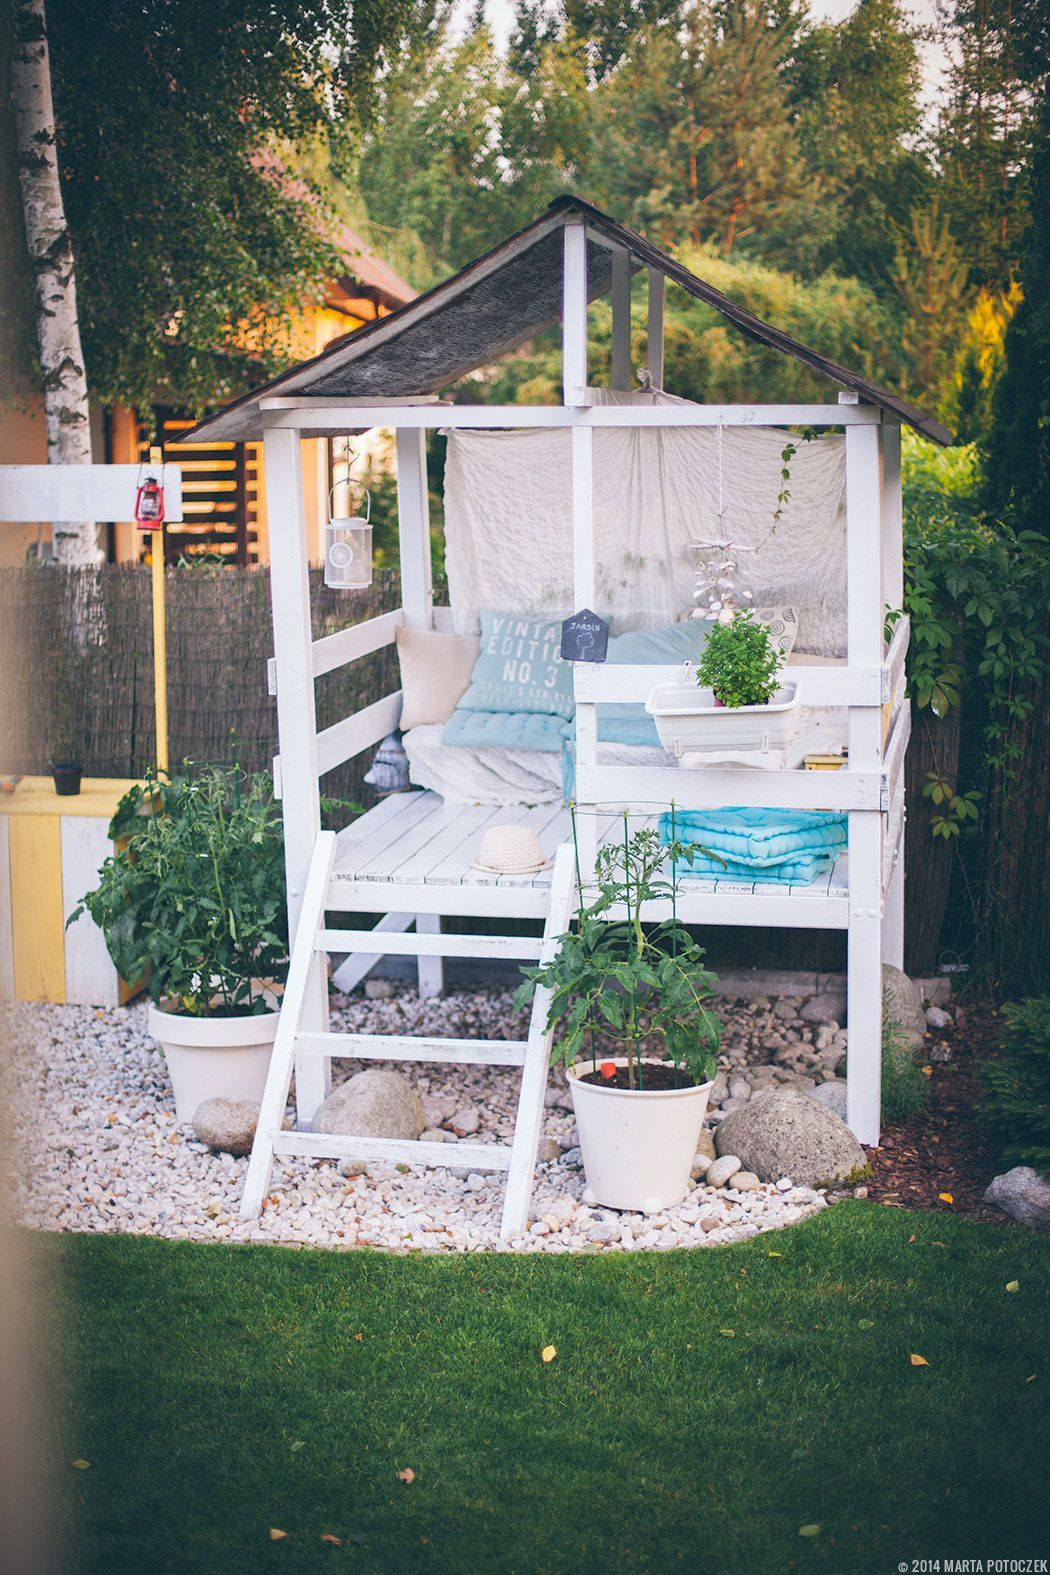 82 DIY Ideas to Beautify Your Backyard (Without Breaking the Bank!) #gardencraft